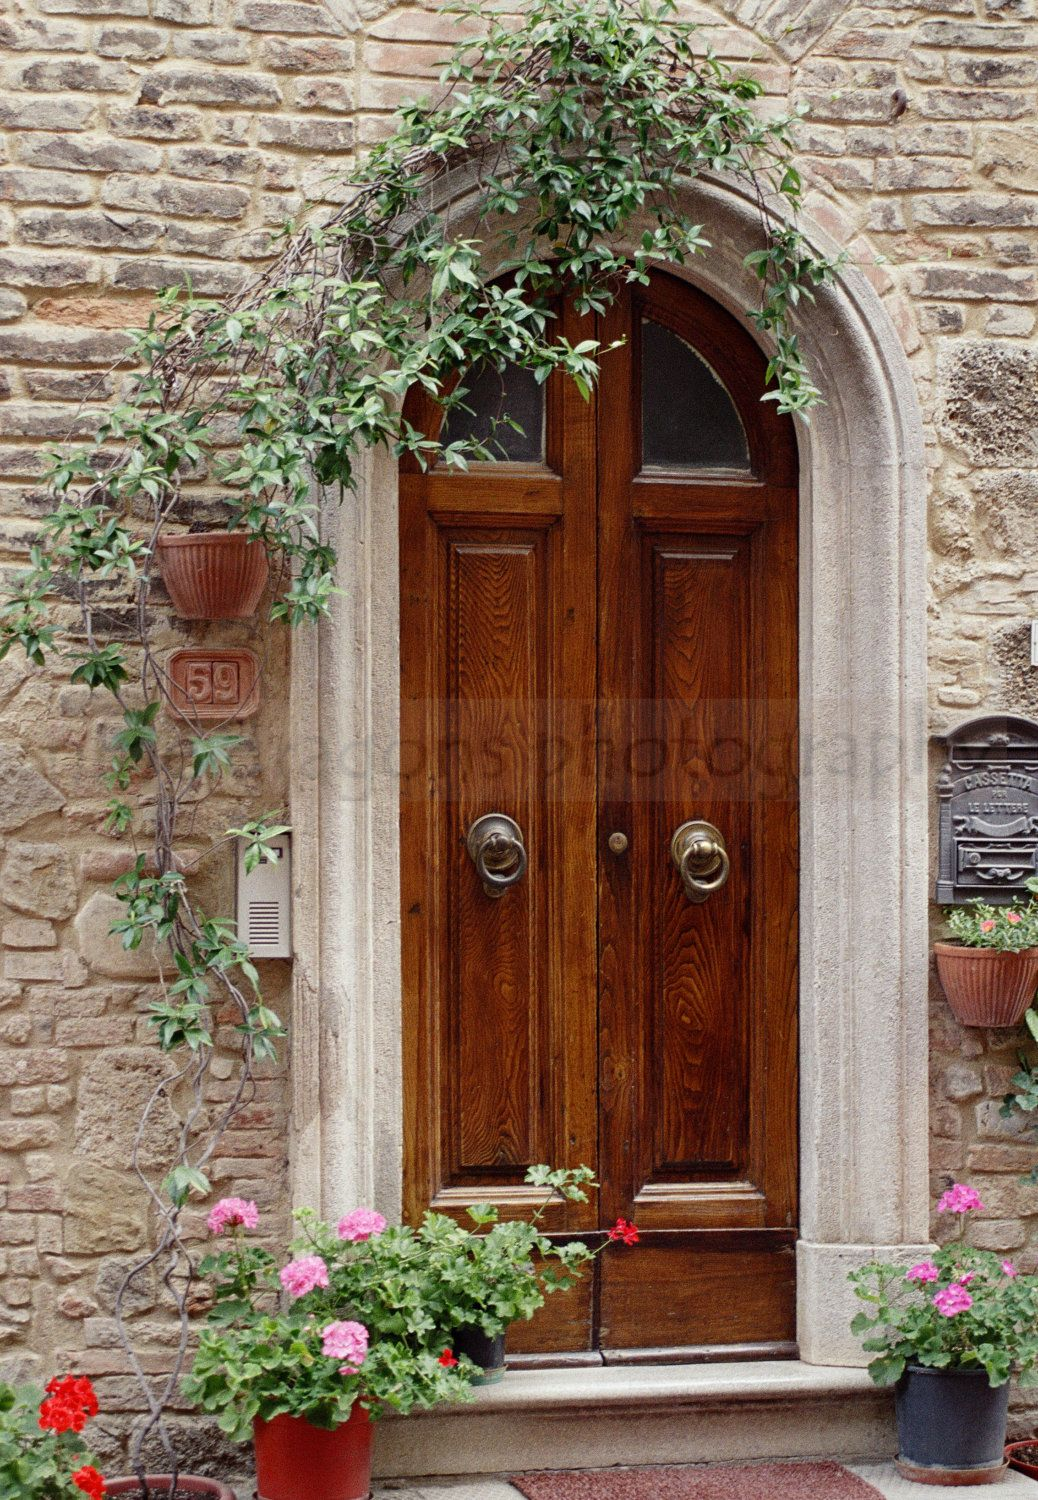 Paintings Of Doors In Italy Italian Door Art European